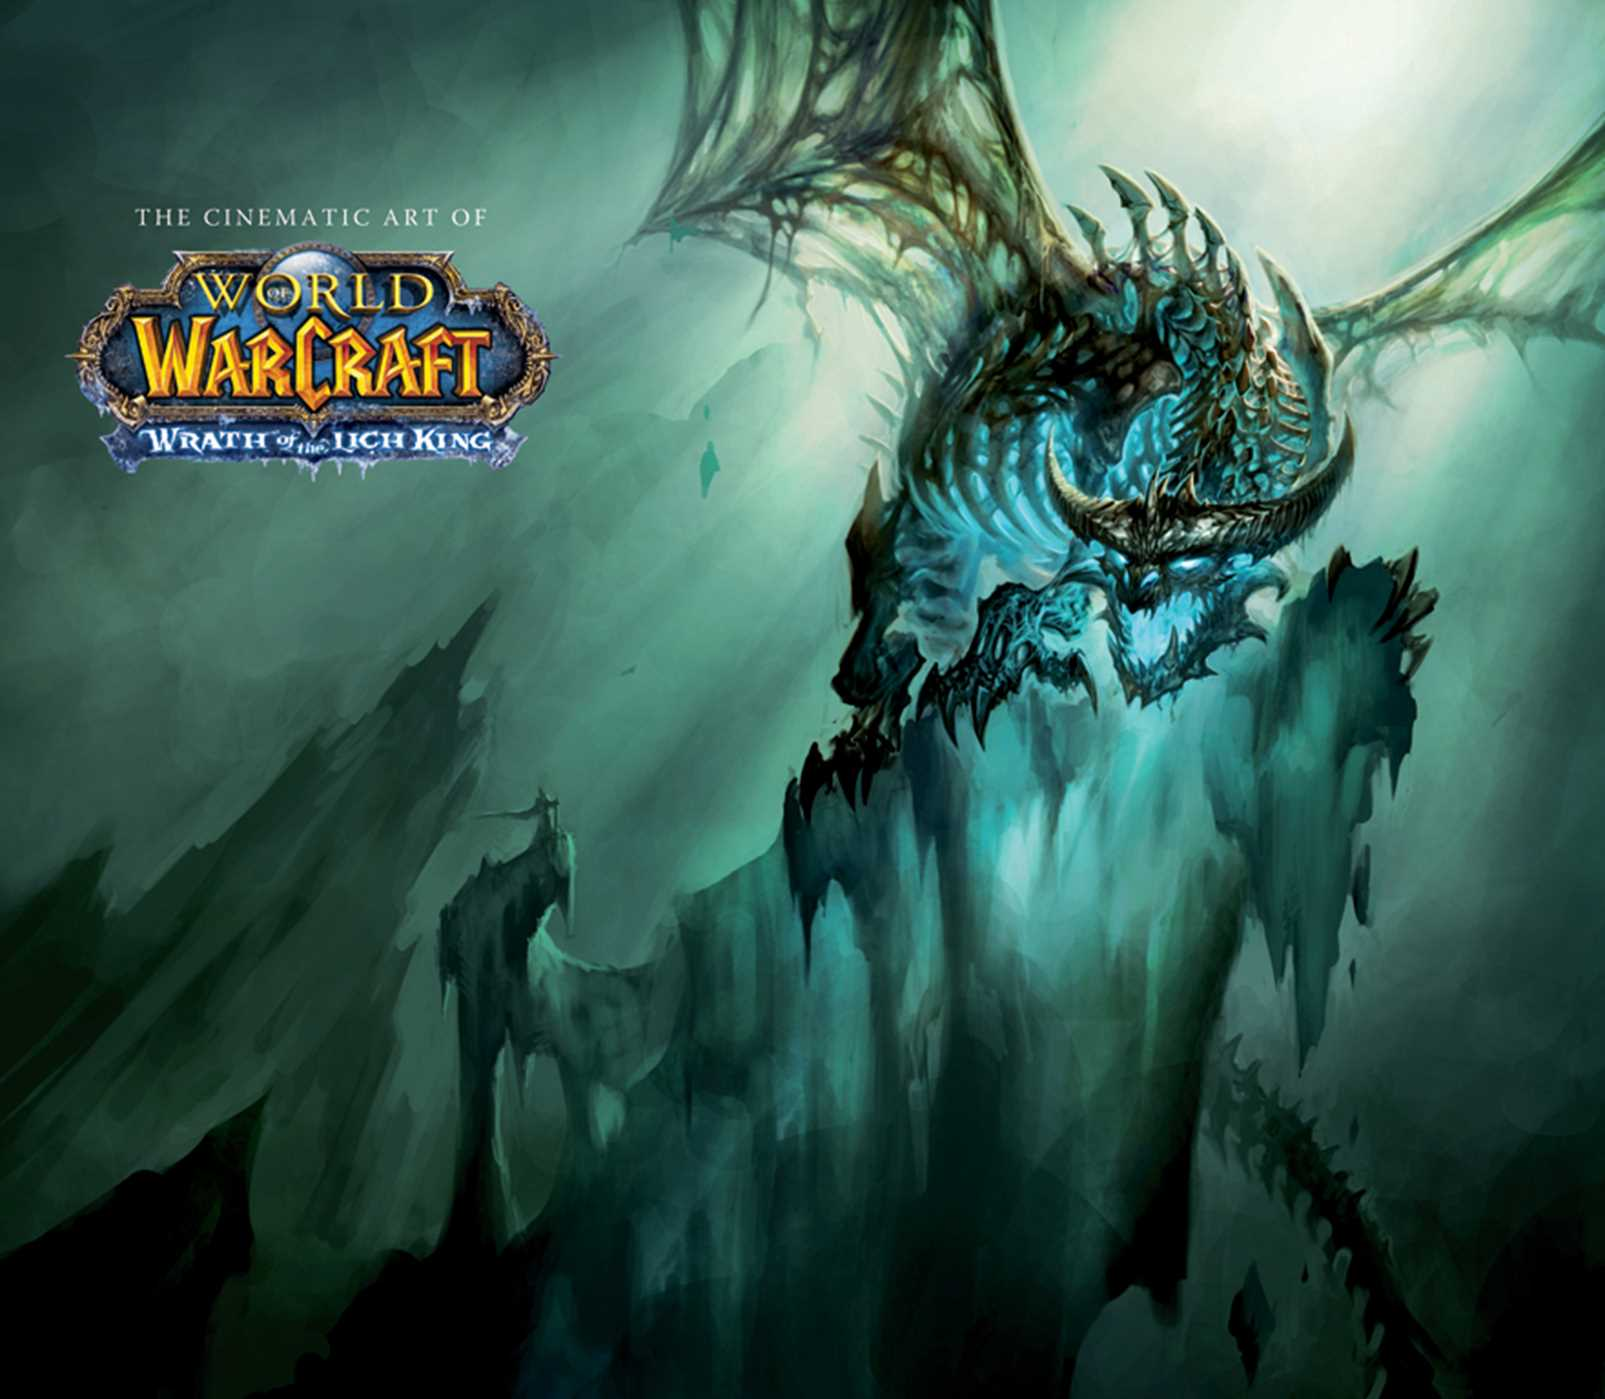 the cinematic art of world of warcraft book by blizzard